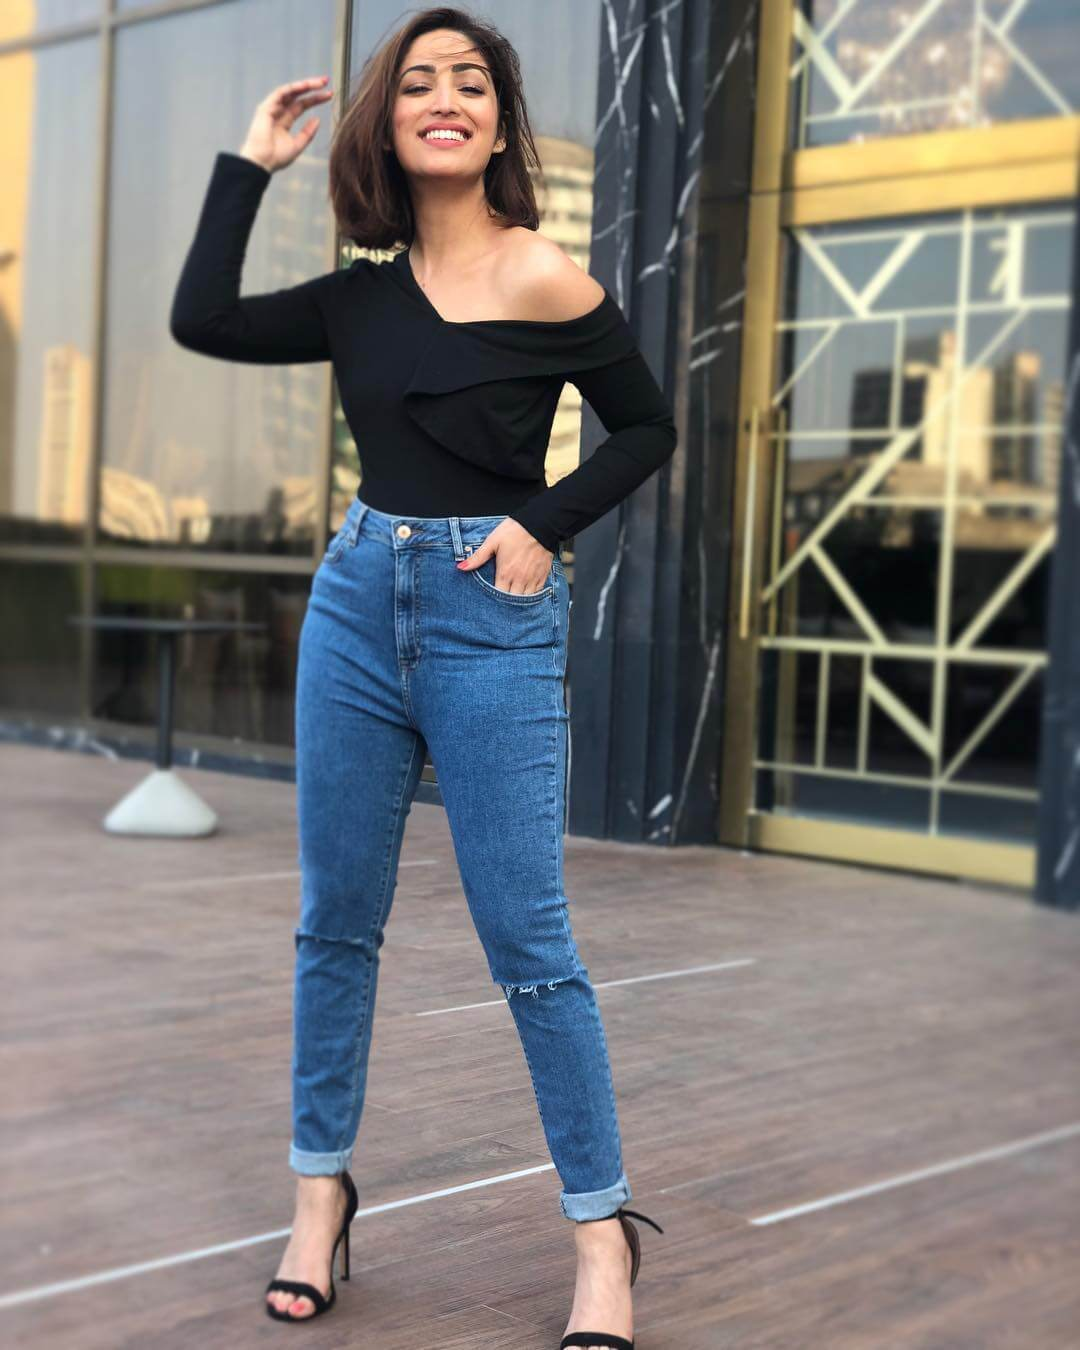 Dazzlerr - These Outfits of Yami Gautam are Perfect for the Days When you Want to Step Out Casually